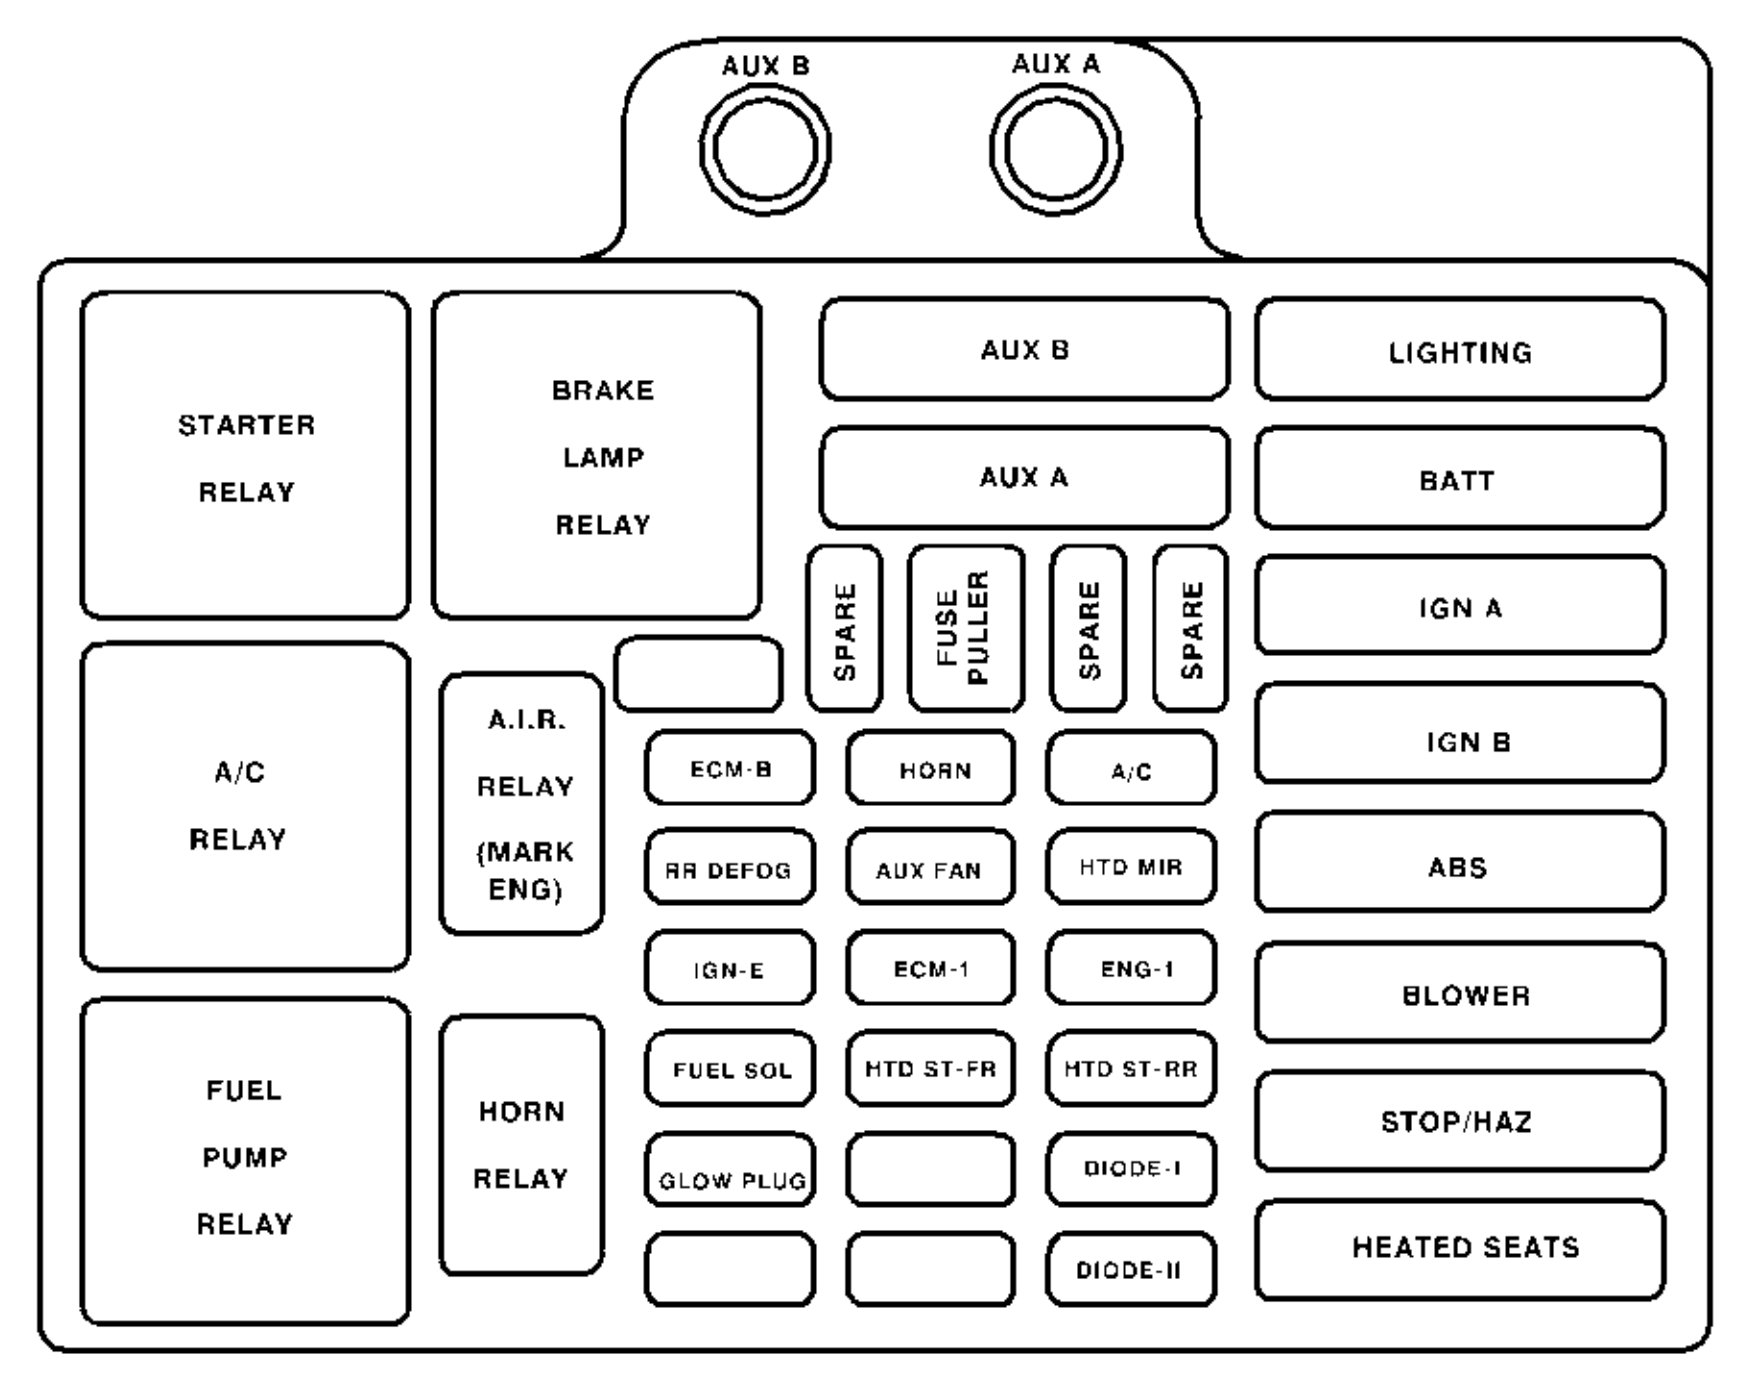 2000 Blazer Fuse Box Diagram likewise 2003 Chevy Cavalier Engine Diagram in addition Kia Carens Mk3 Rd Third Generation From 2013 Fuse Box Diagram besides 1999 Suburban Fuse Box besides Ford O2 Sensor Location. on chevy cavalier fuse box